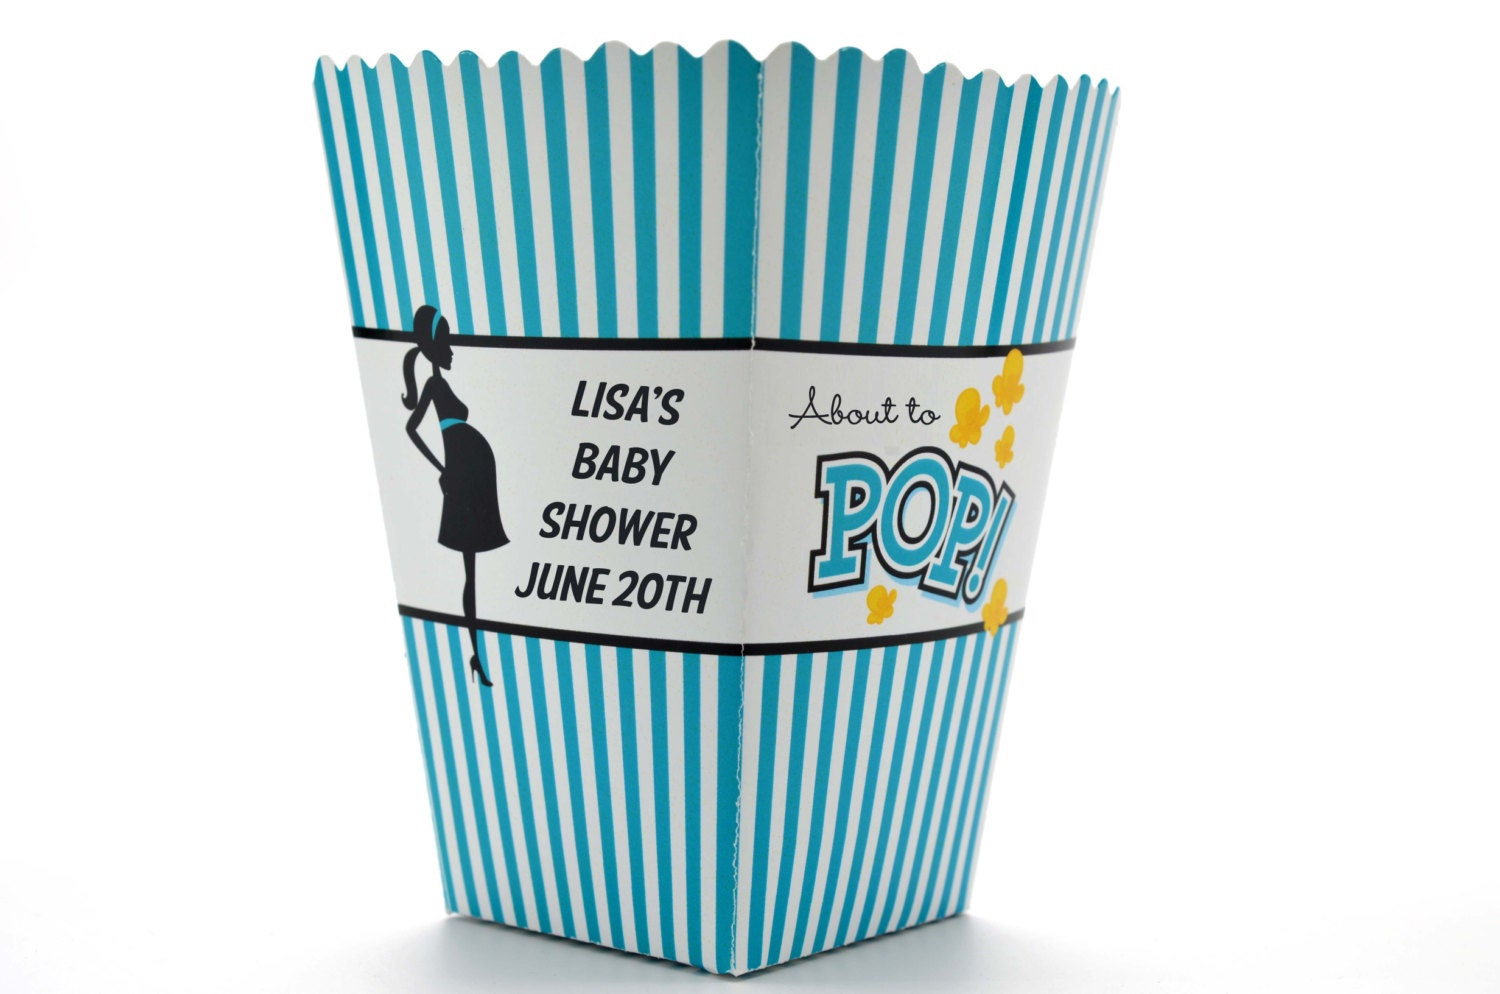 teal about to pop personalized baby shower popcorn boxes